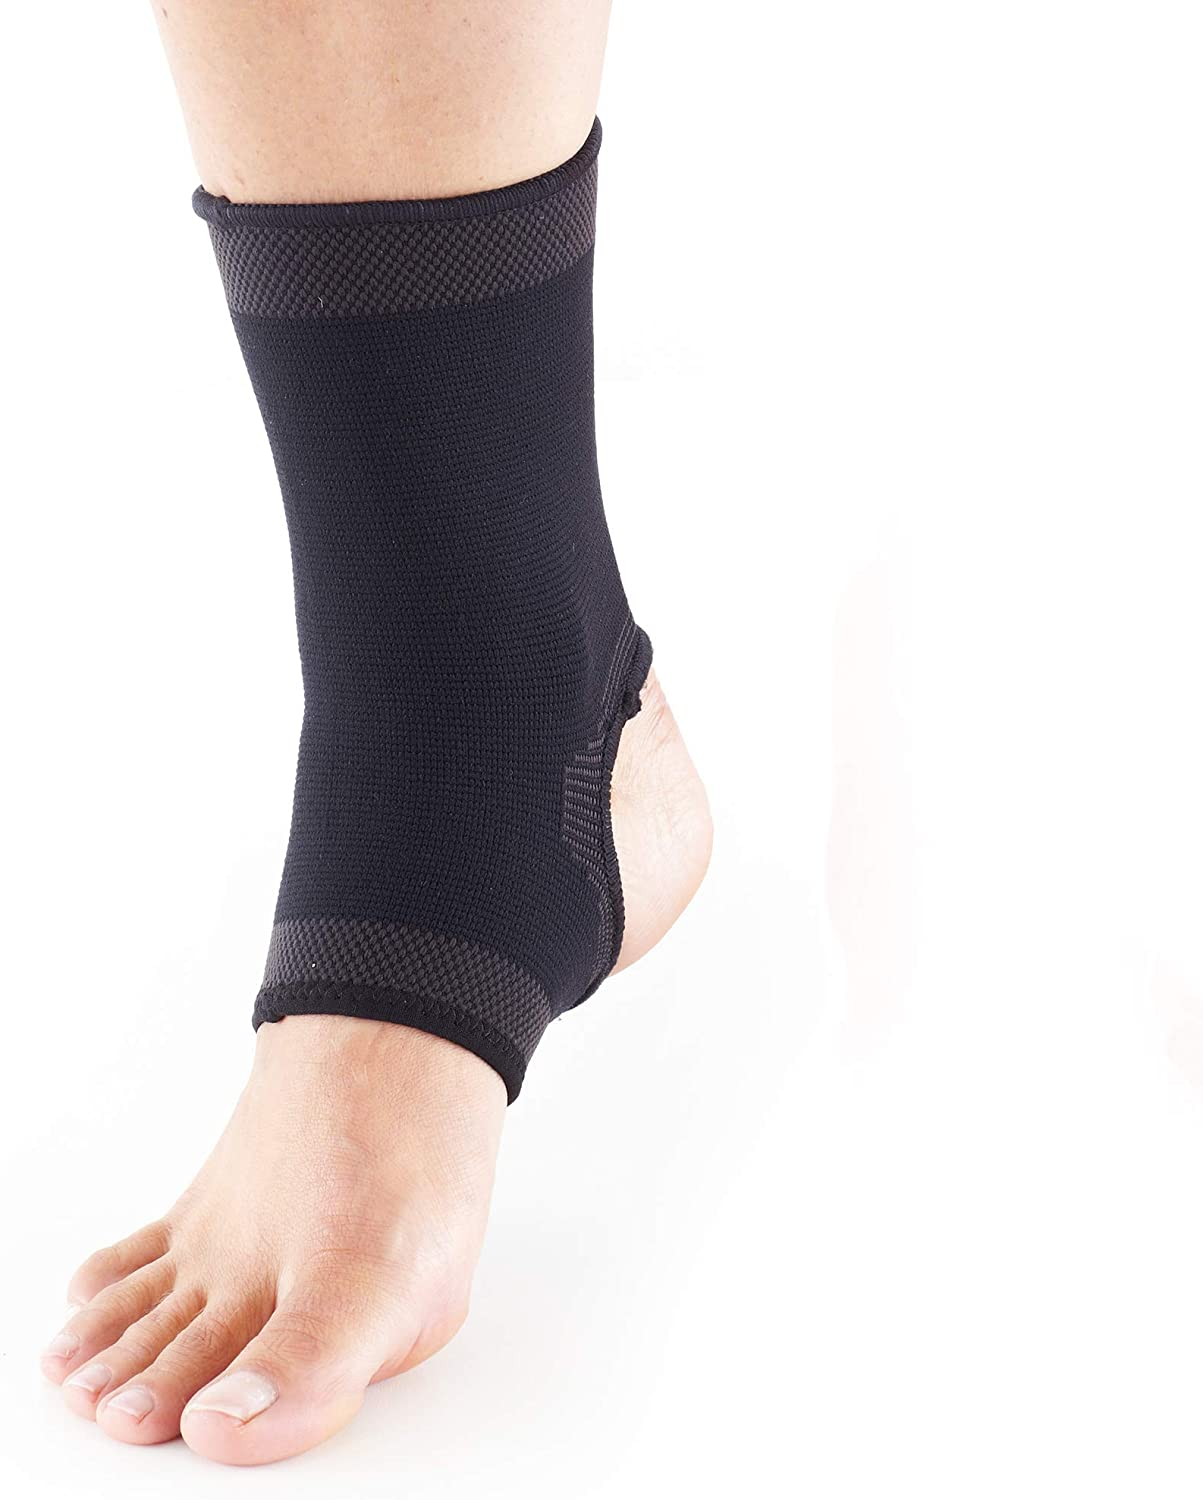 Rite Aid Ankle Brace Compression Sleeve, Size S/M - Pack of 1 | Ankle Compression Sleeve